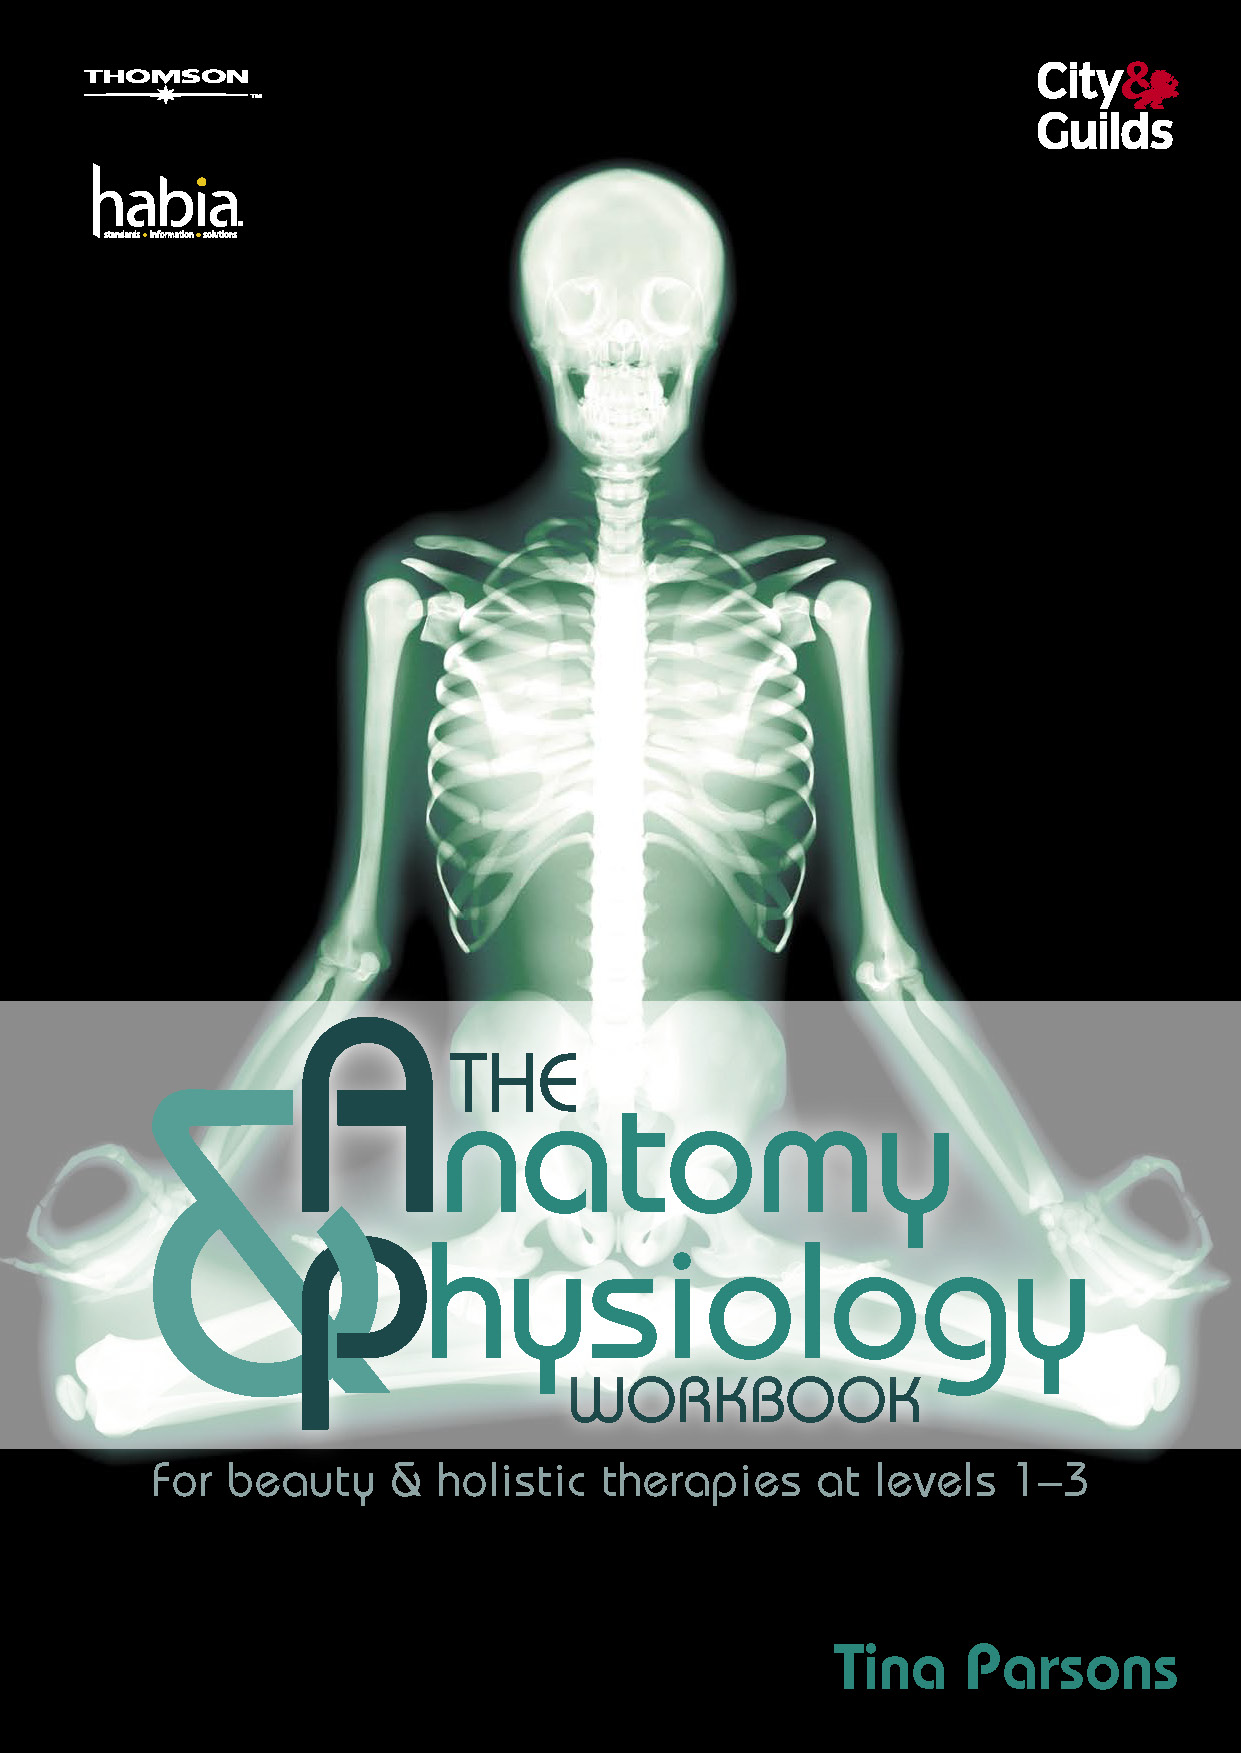 The Anatomy & Physiology Workbook